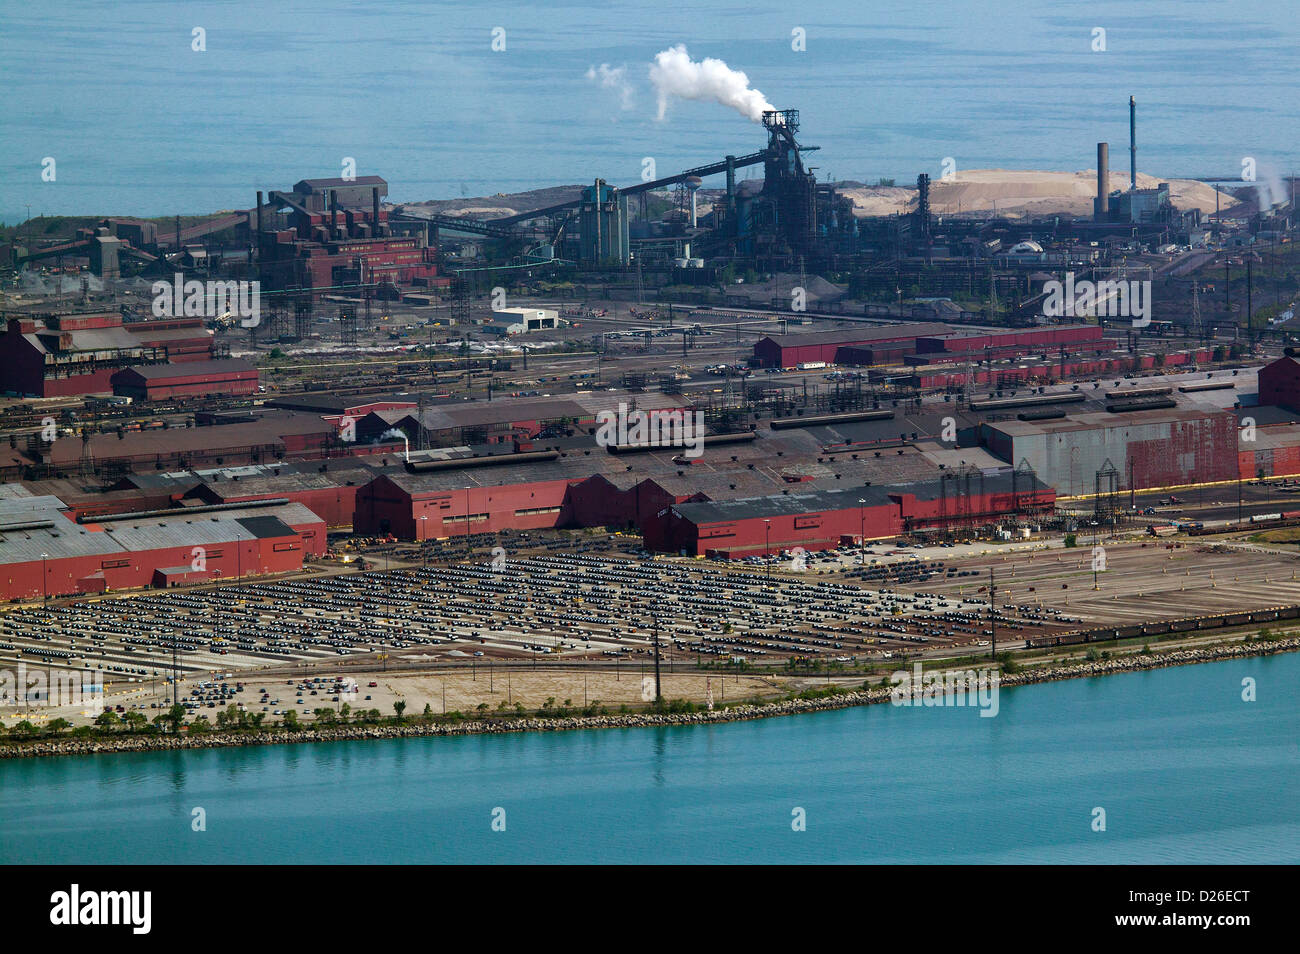 aerial photograph ArcelorMittal Indiana Harbor steelmaking complex, Indiana - Stock Image